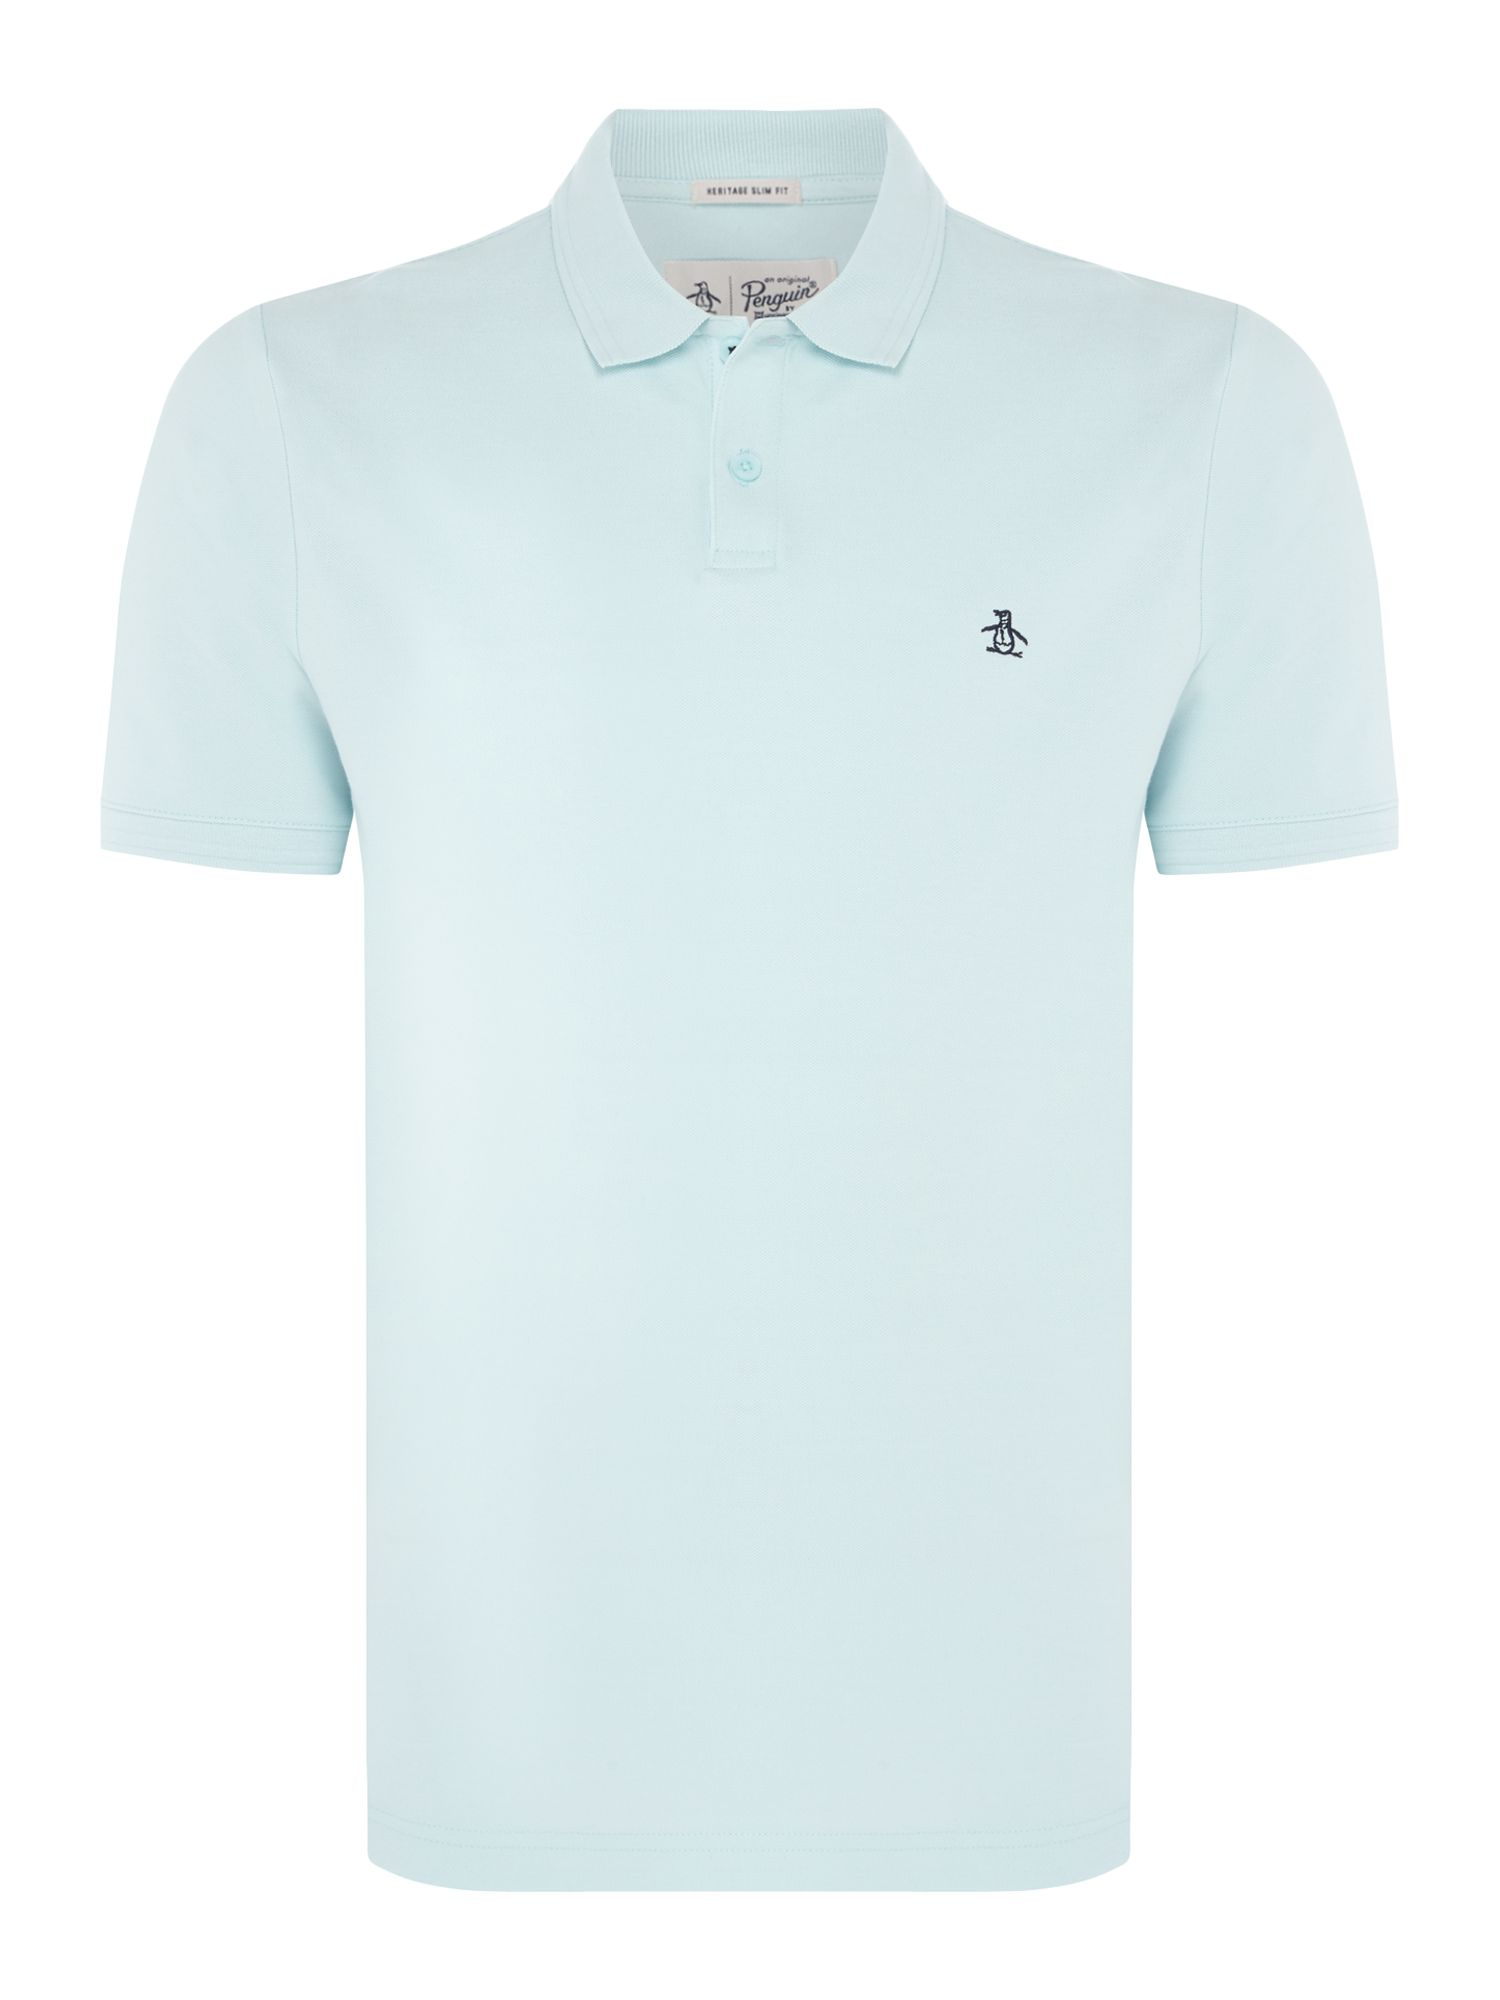 Men's Original Penguin Raised Rib Polo Shirt, Light Blue